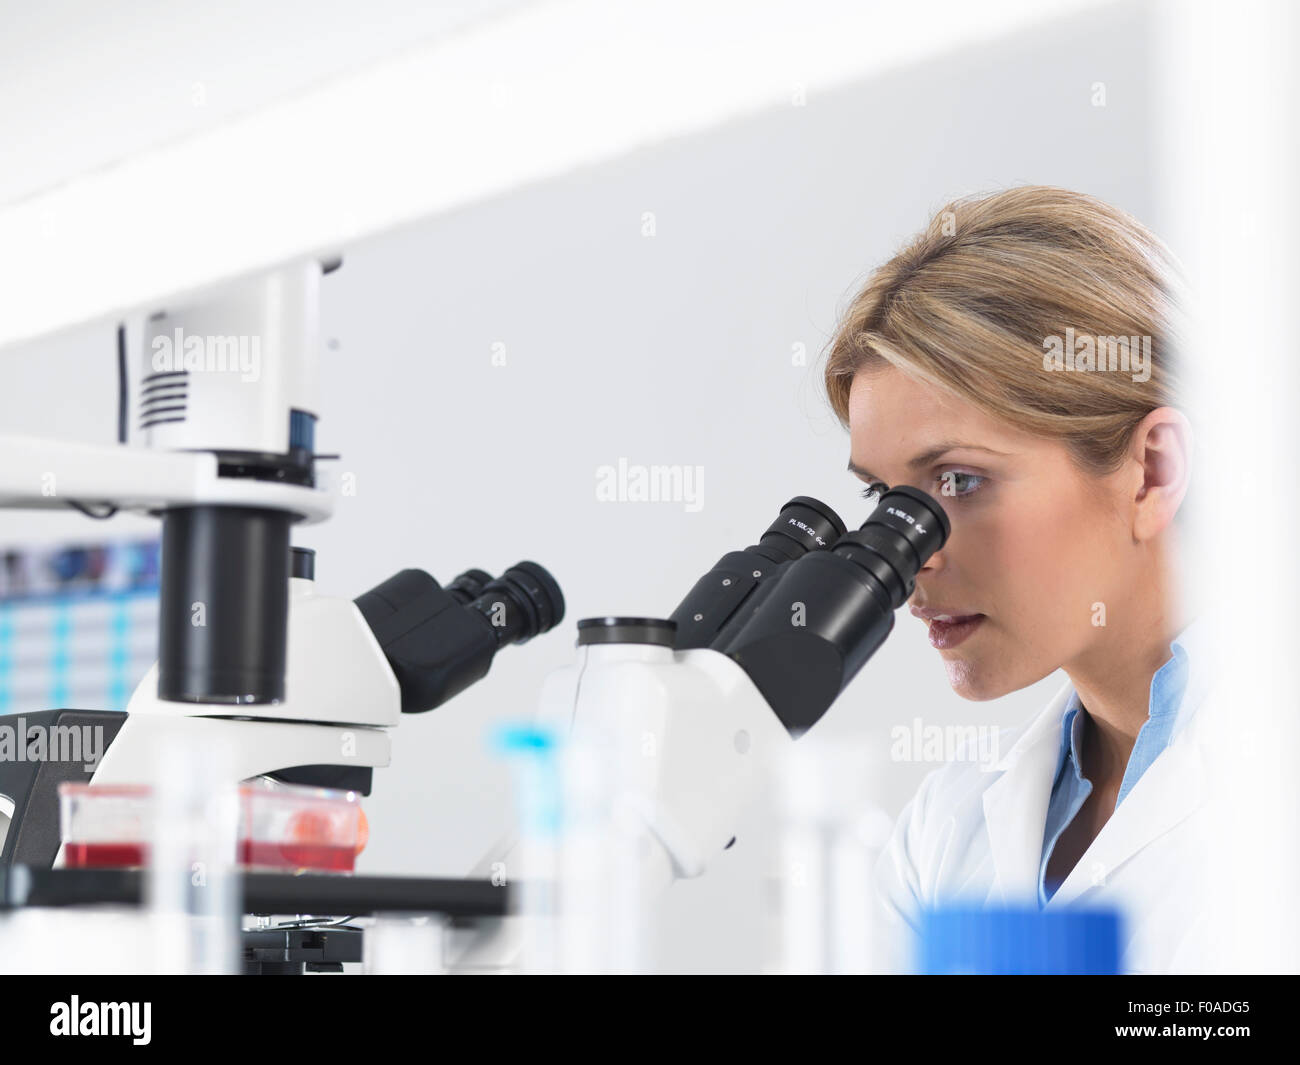 Scientist viewing stem cell cultures growing in growth medium under a inverted microscope in a laboratory - Stock Image